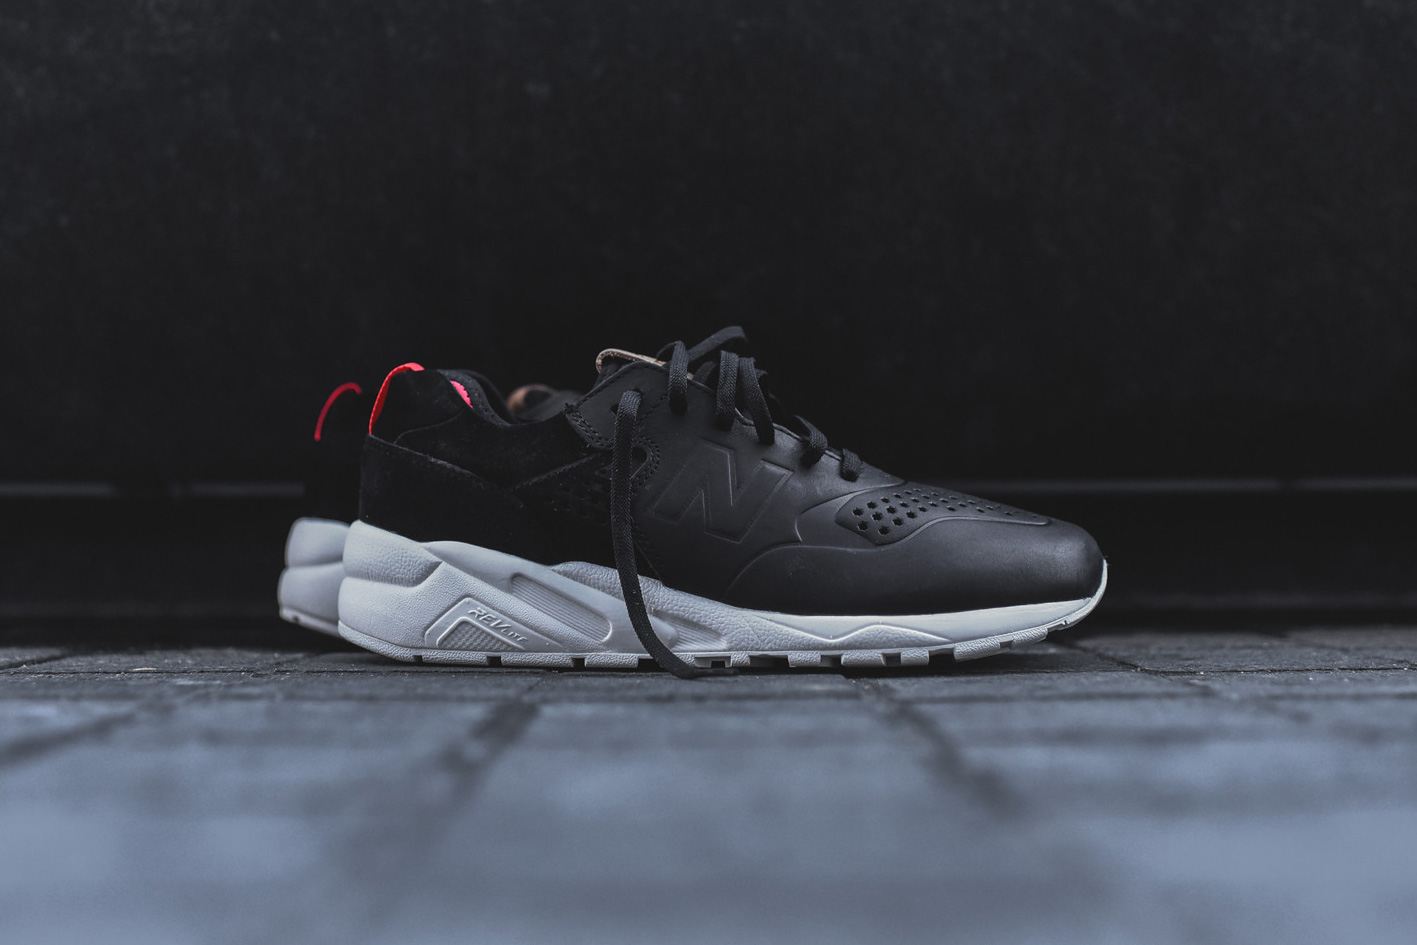 New Balance Unveils the Deconstructed MT580